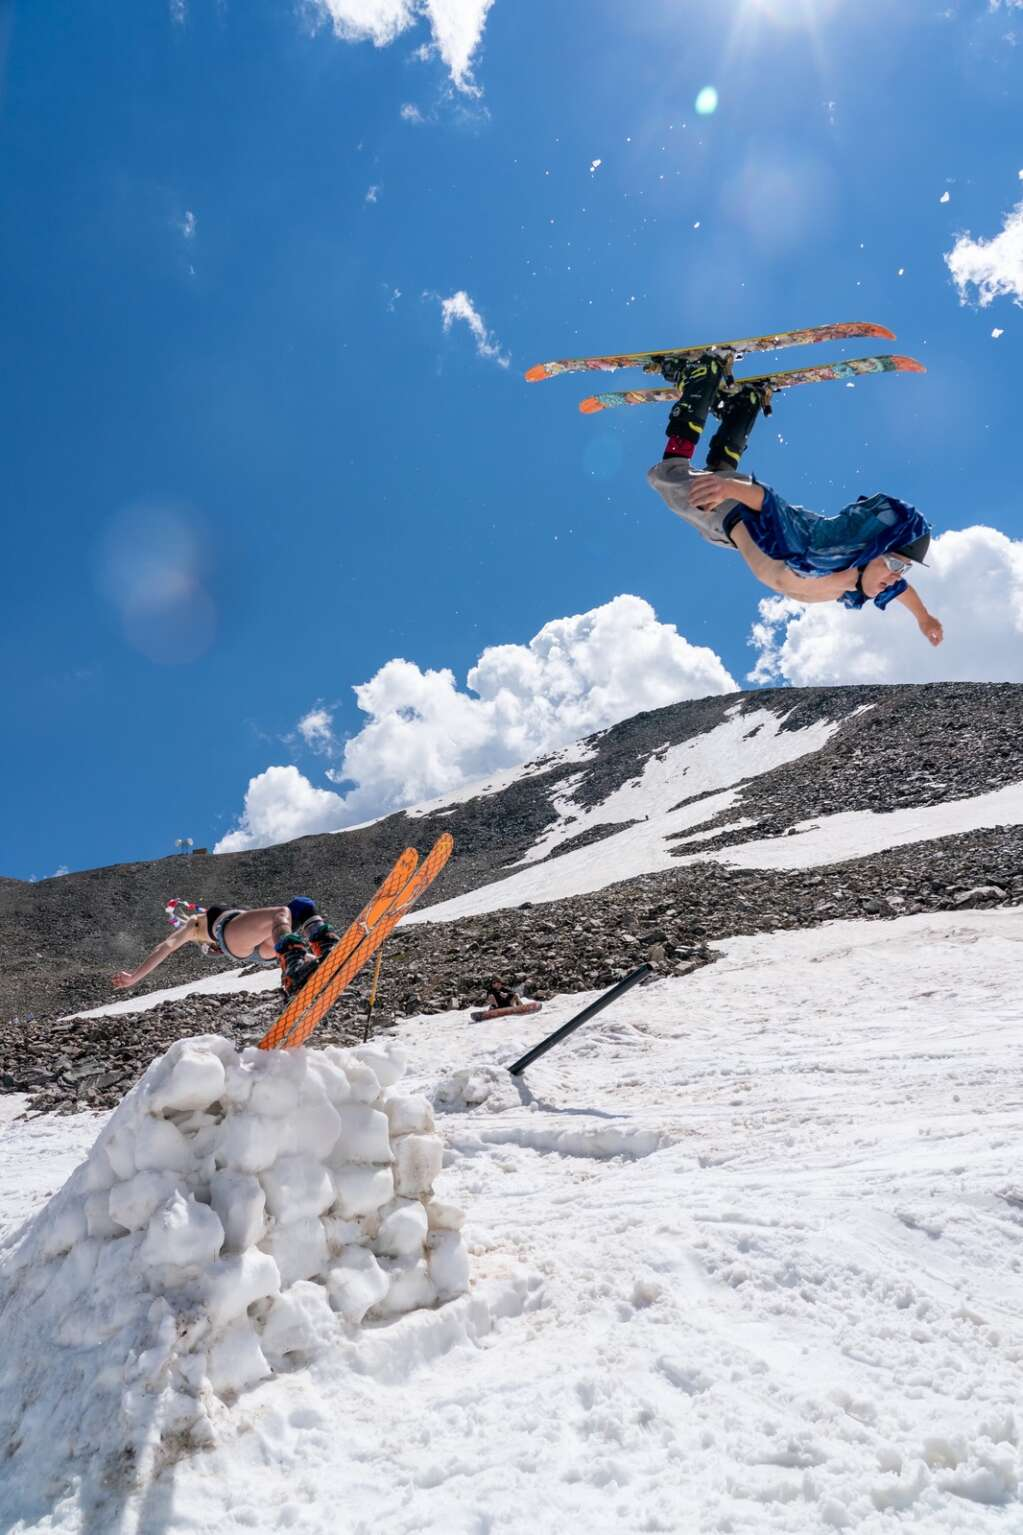 Skiers send backflips off the money booter at Fourth of July Bowl on Peak 10 at Sunday's fourth annual Peak 10 Classic. | Photo by Sage Vogt